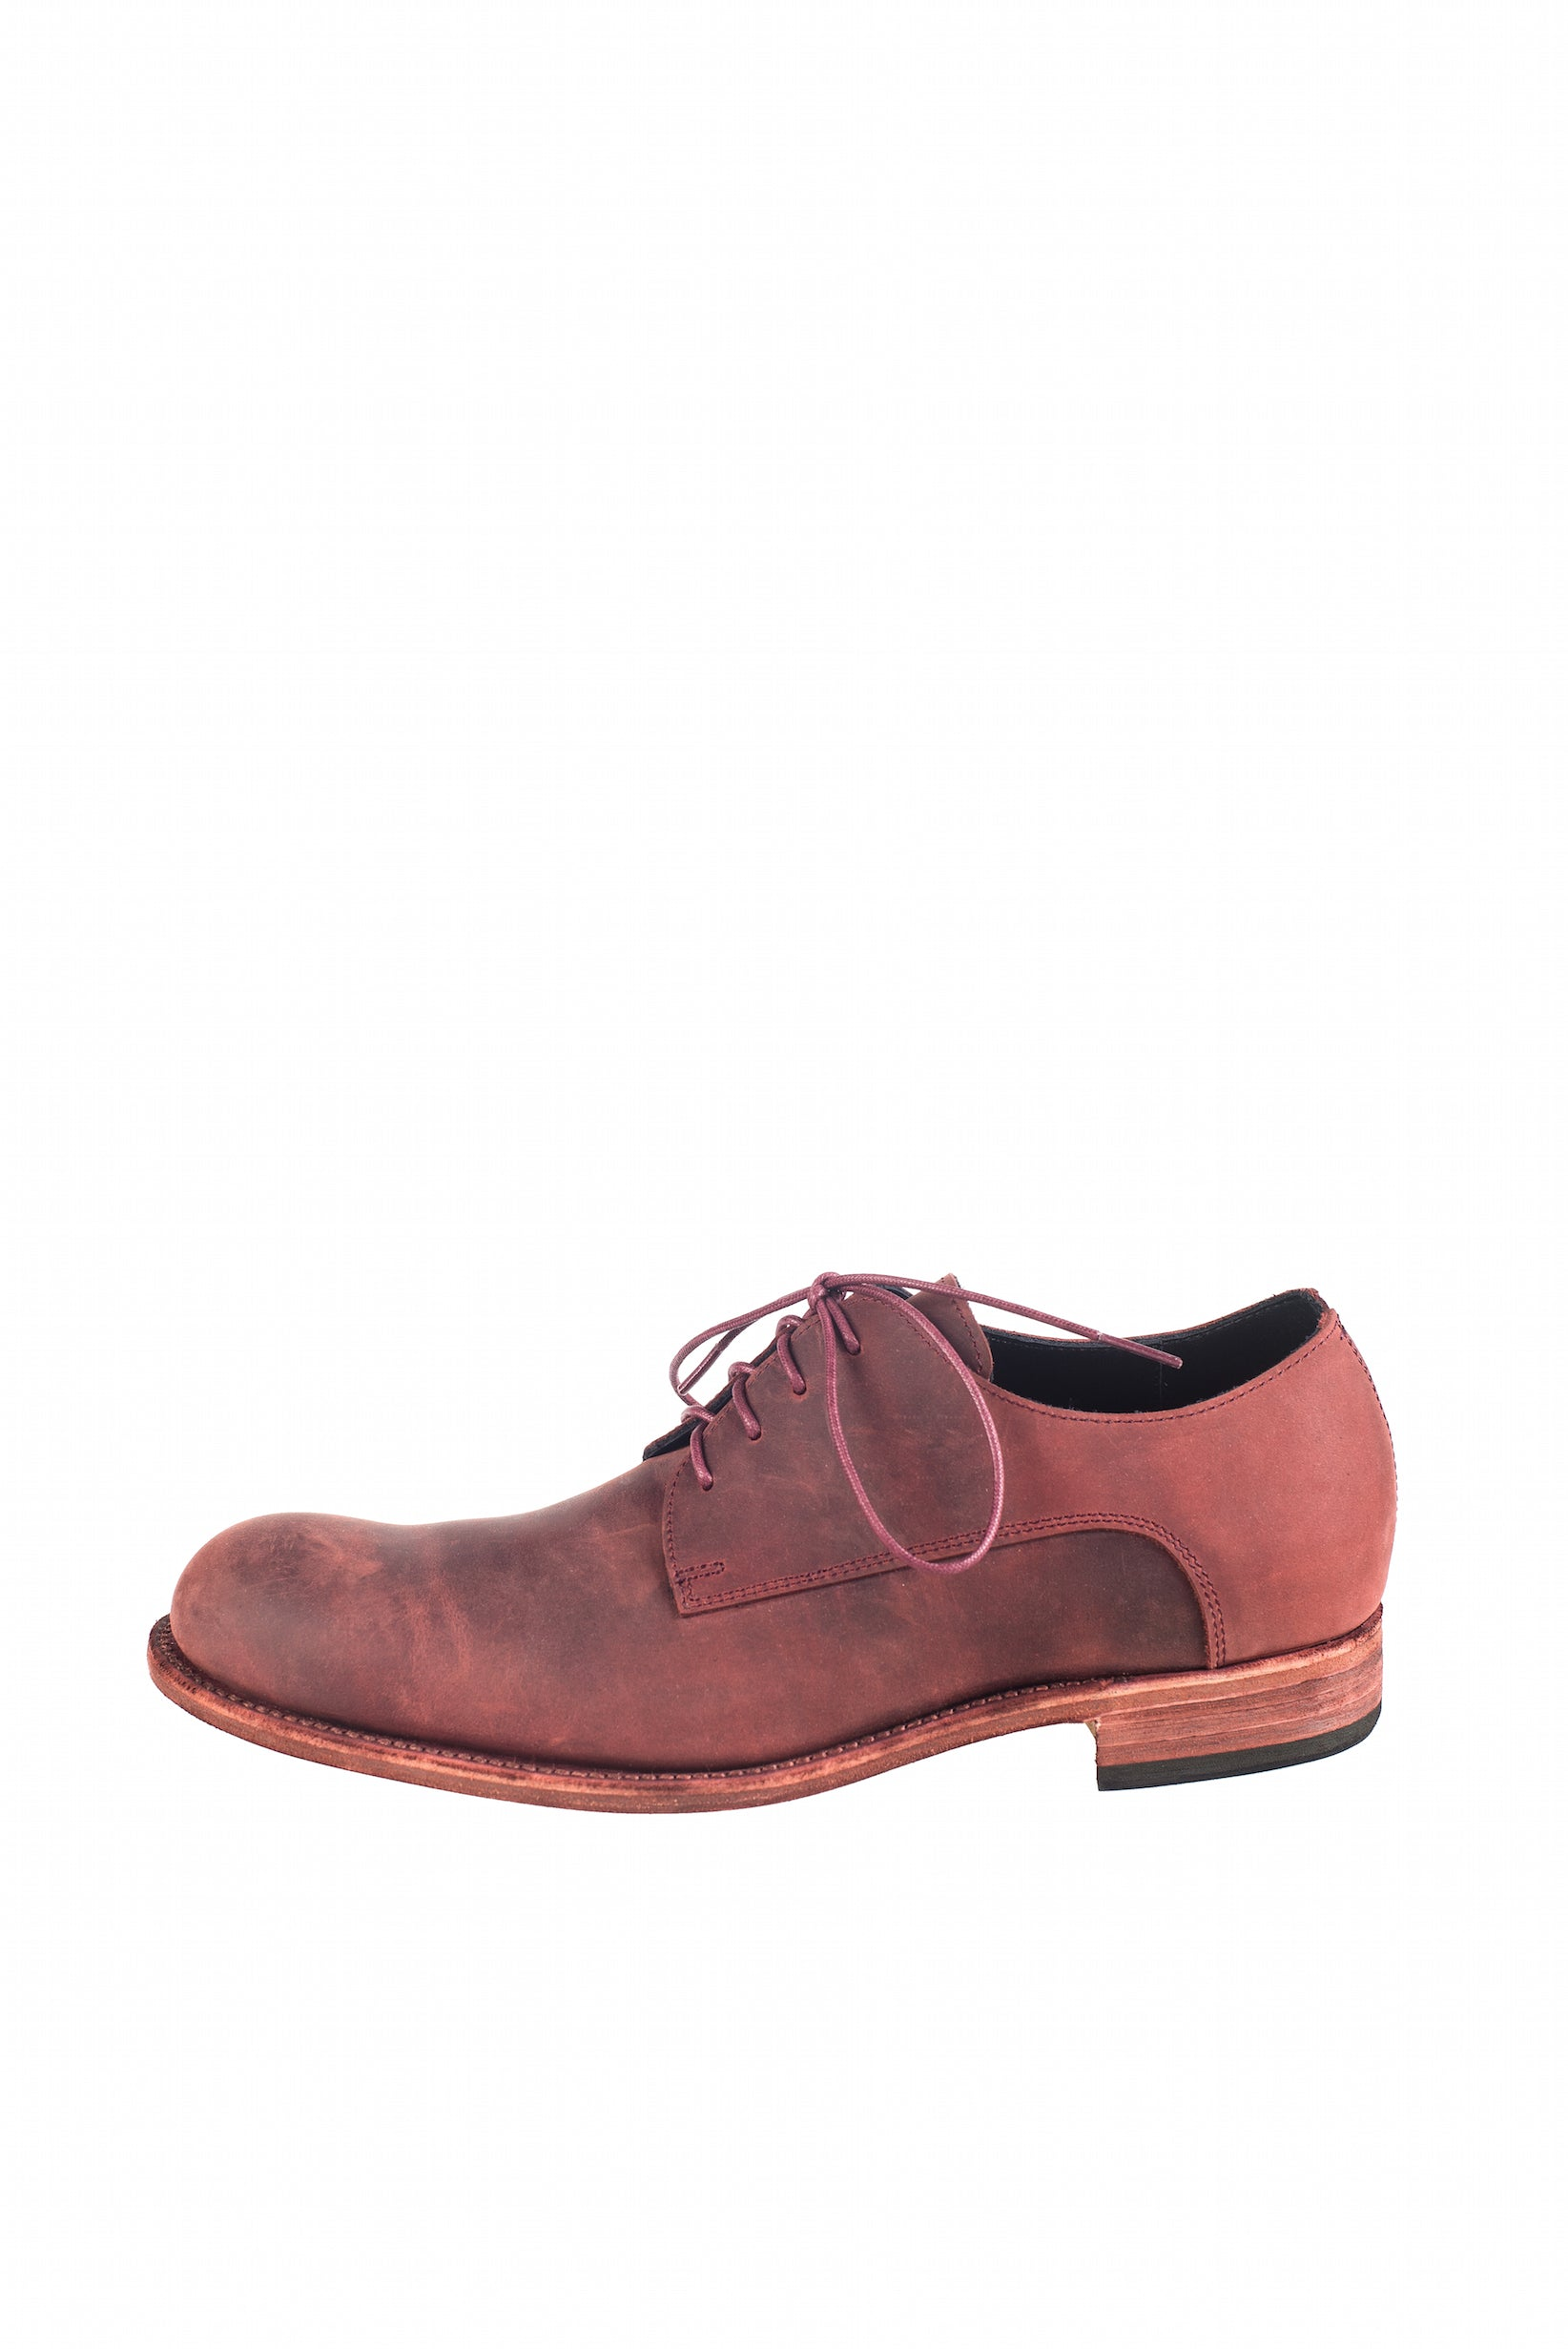 Wine Manual Blucher - Female